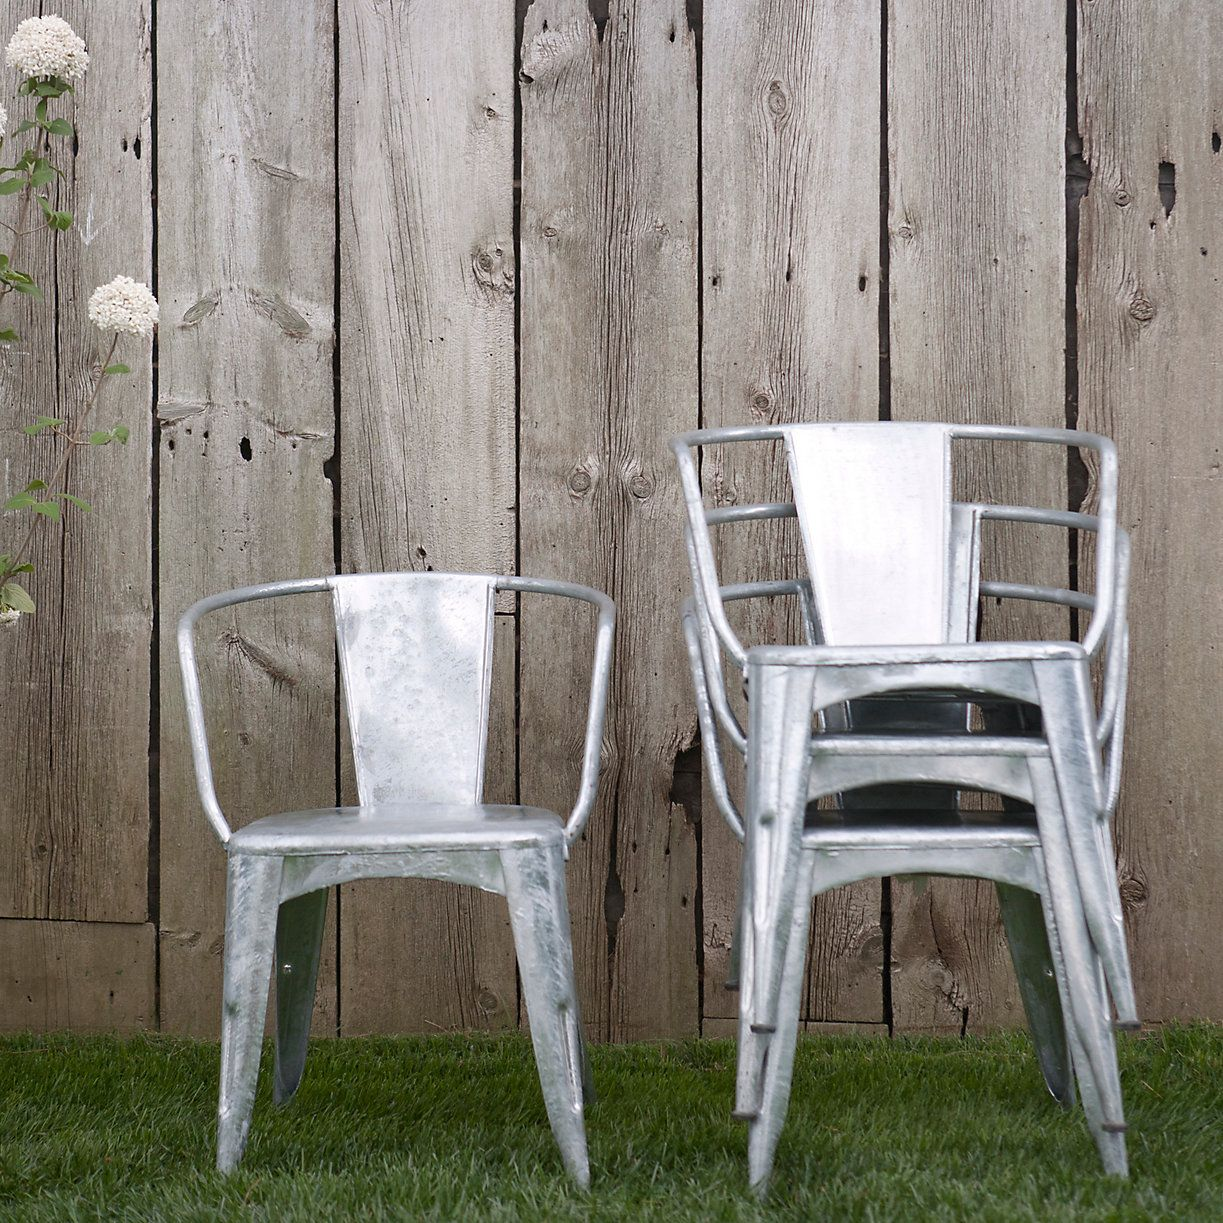 Zinc Cafe Chairs For The Rooftop Products We Love Cafe Chairs Chair Outdoor